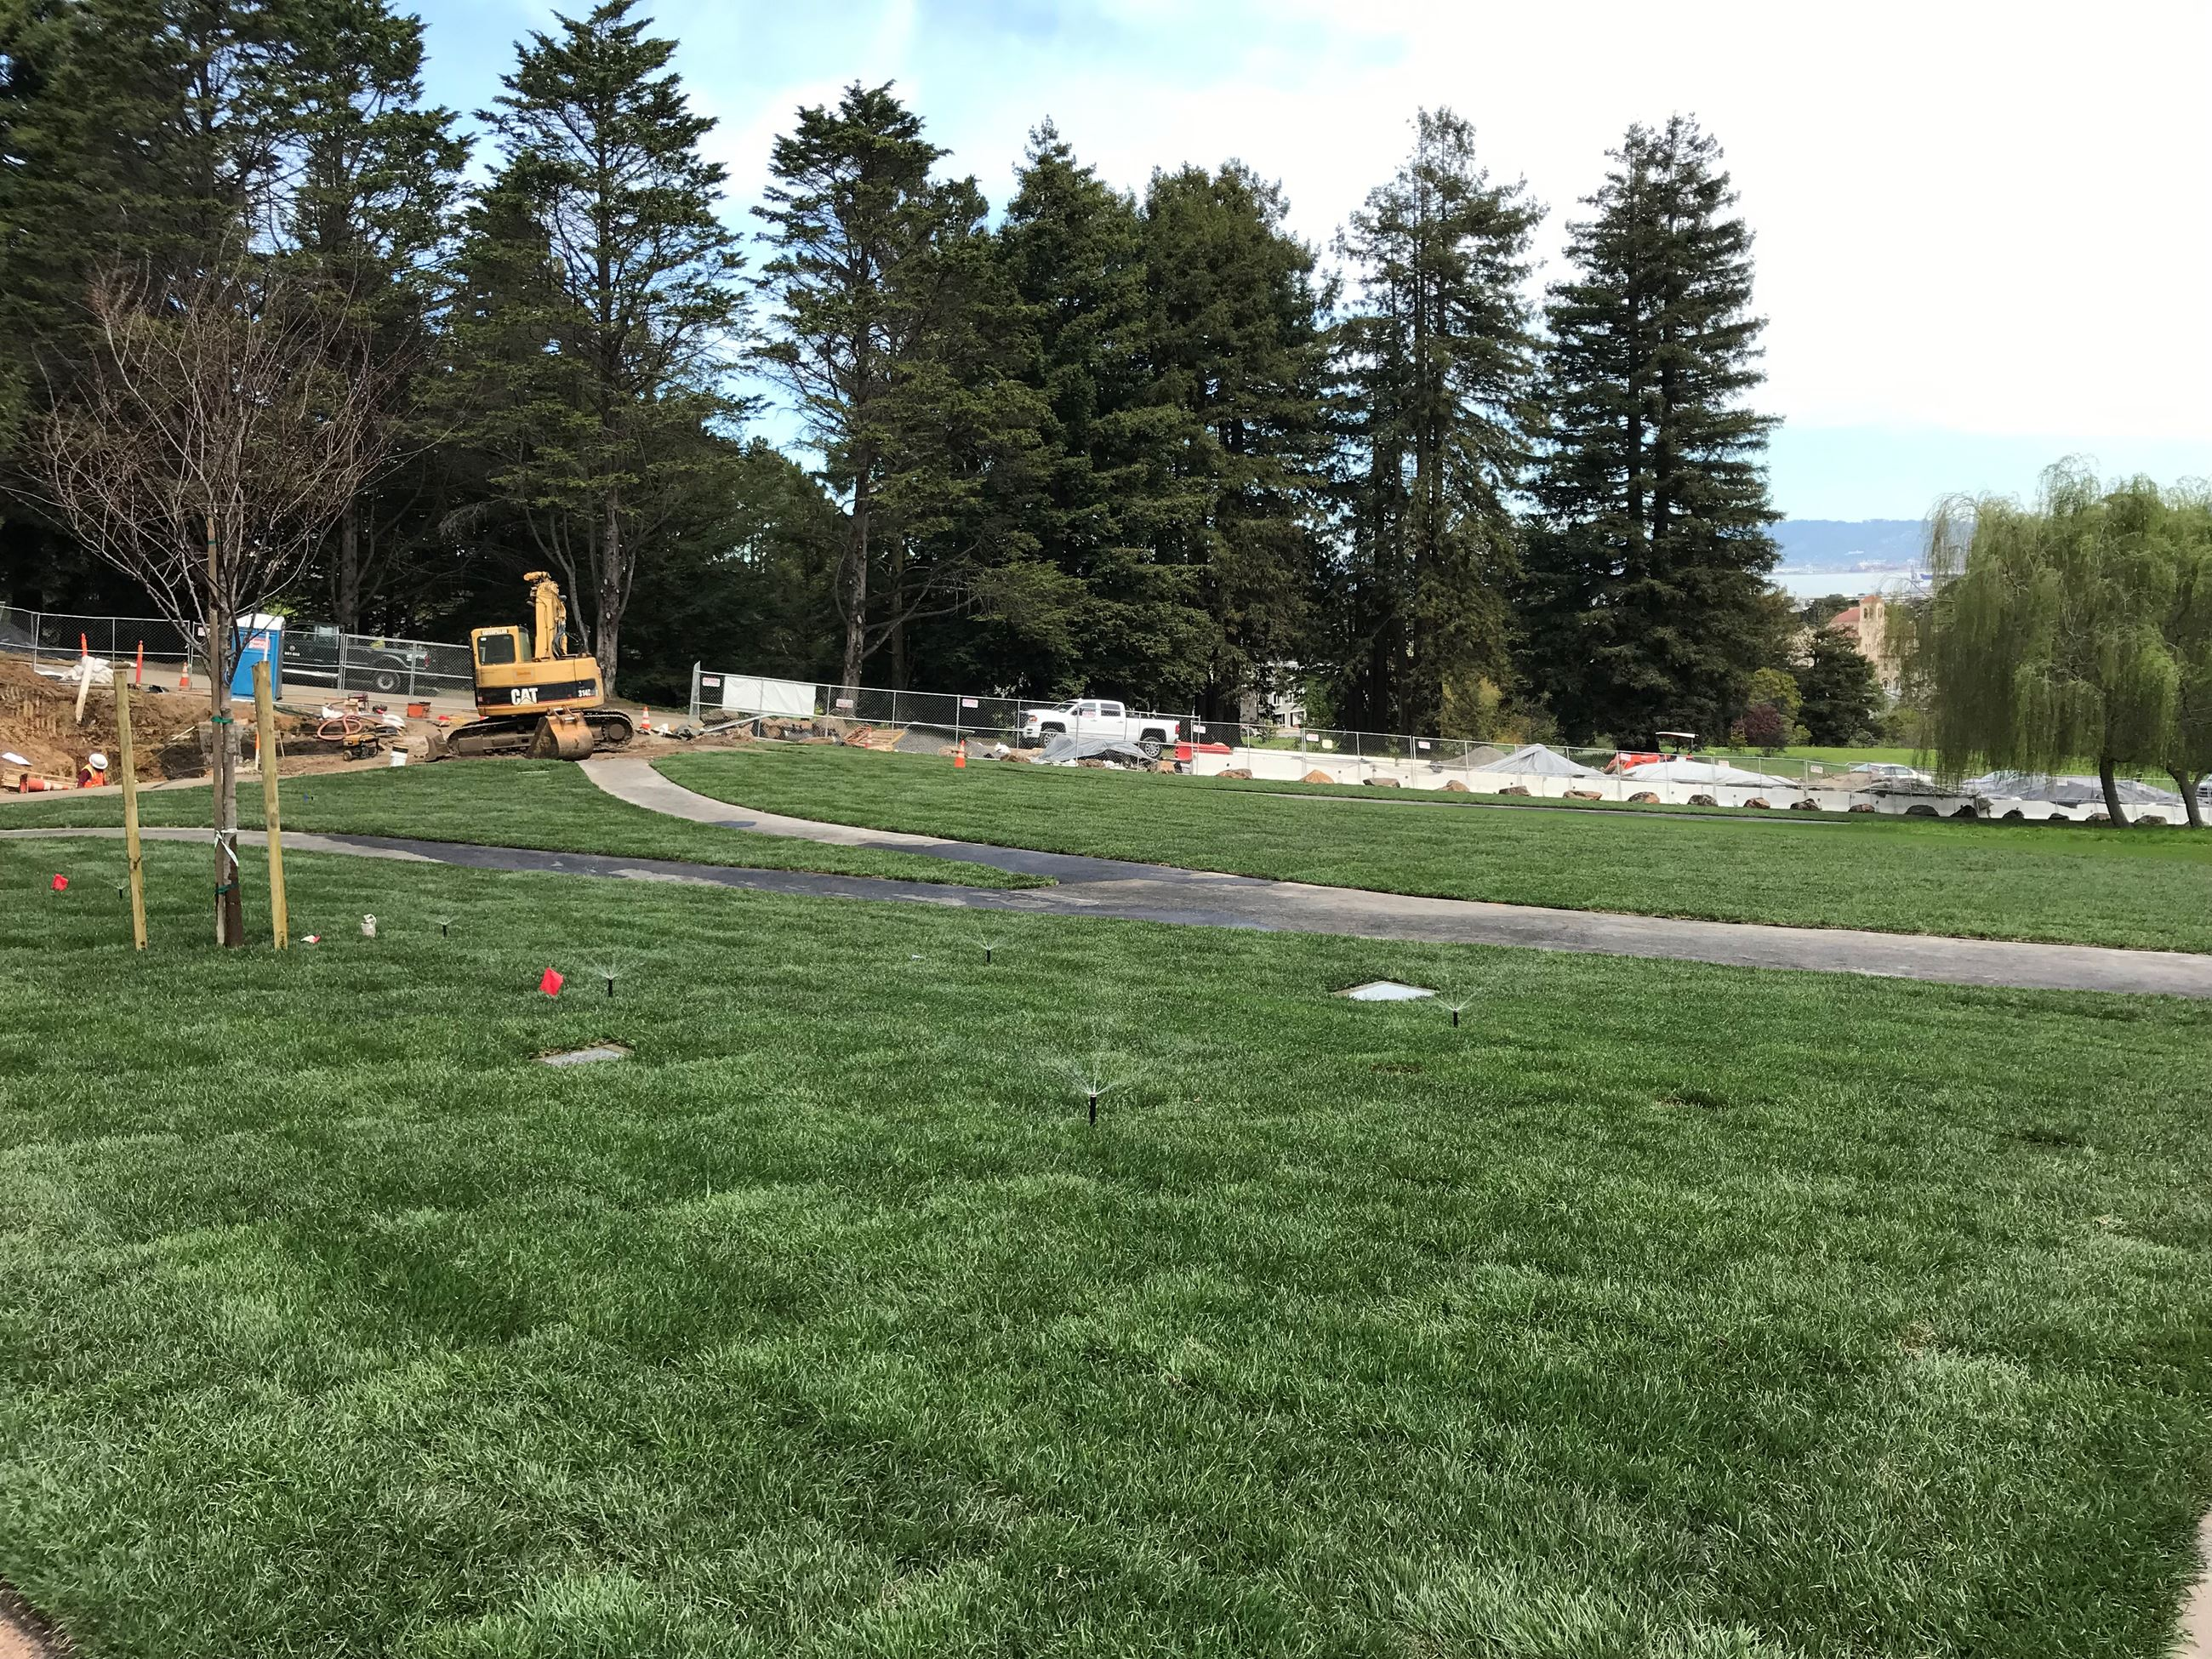 In the foreground is the newly installed lawn area. In the background is the picnic area showing a p